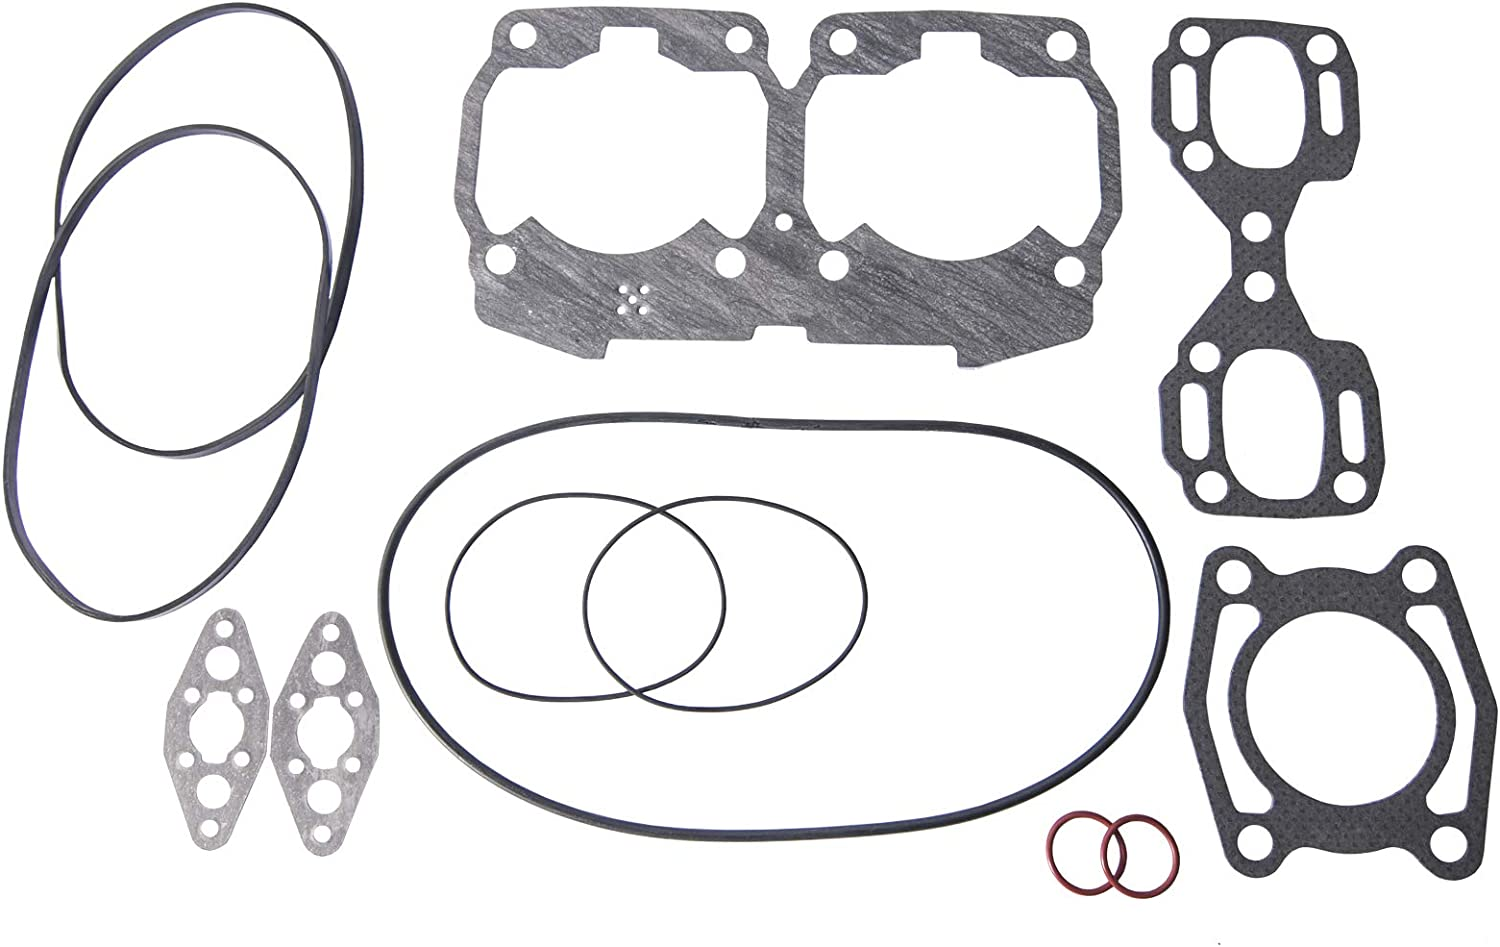 Sea-Doo 787 Top-End Max 60% OFF Gasket Kit XP800 Challenger XP Fort Worth Mall GSX Chall GTX